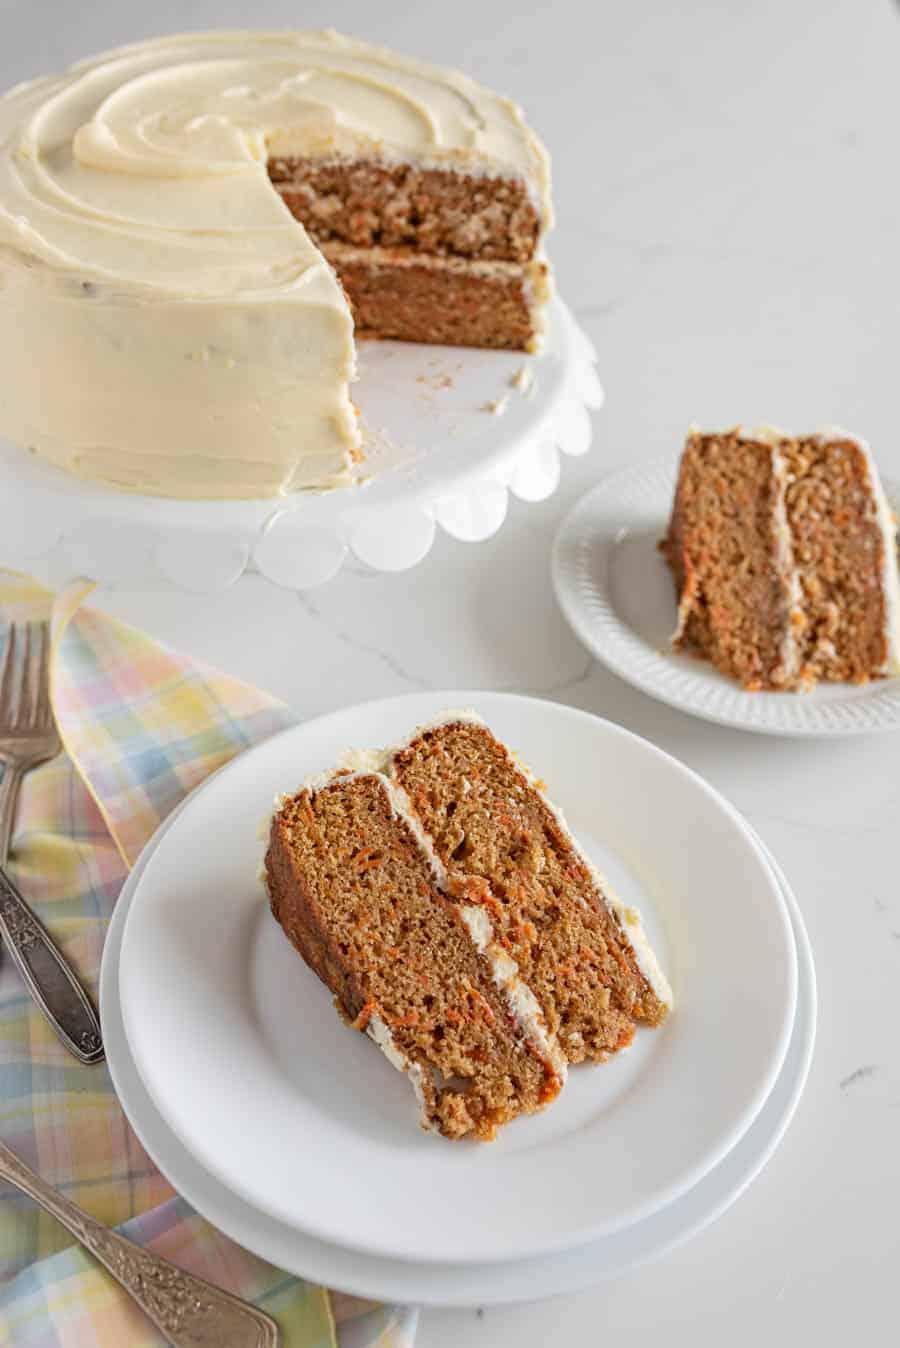 carrot cake on white cake stand next to slices of carrot cake on two round white plates with plaid pastel napkin